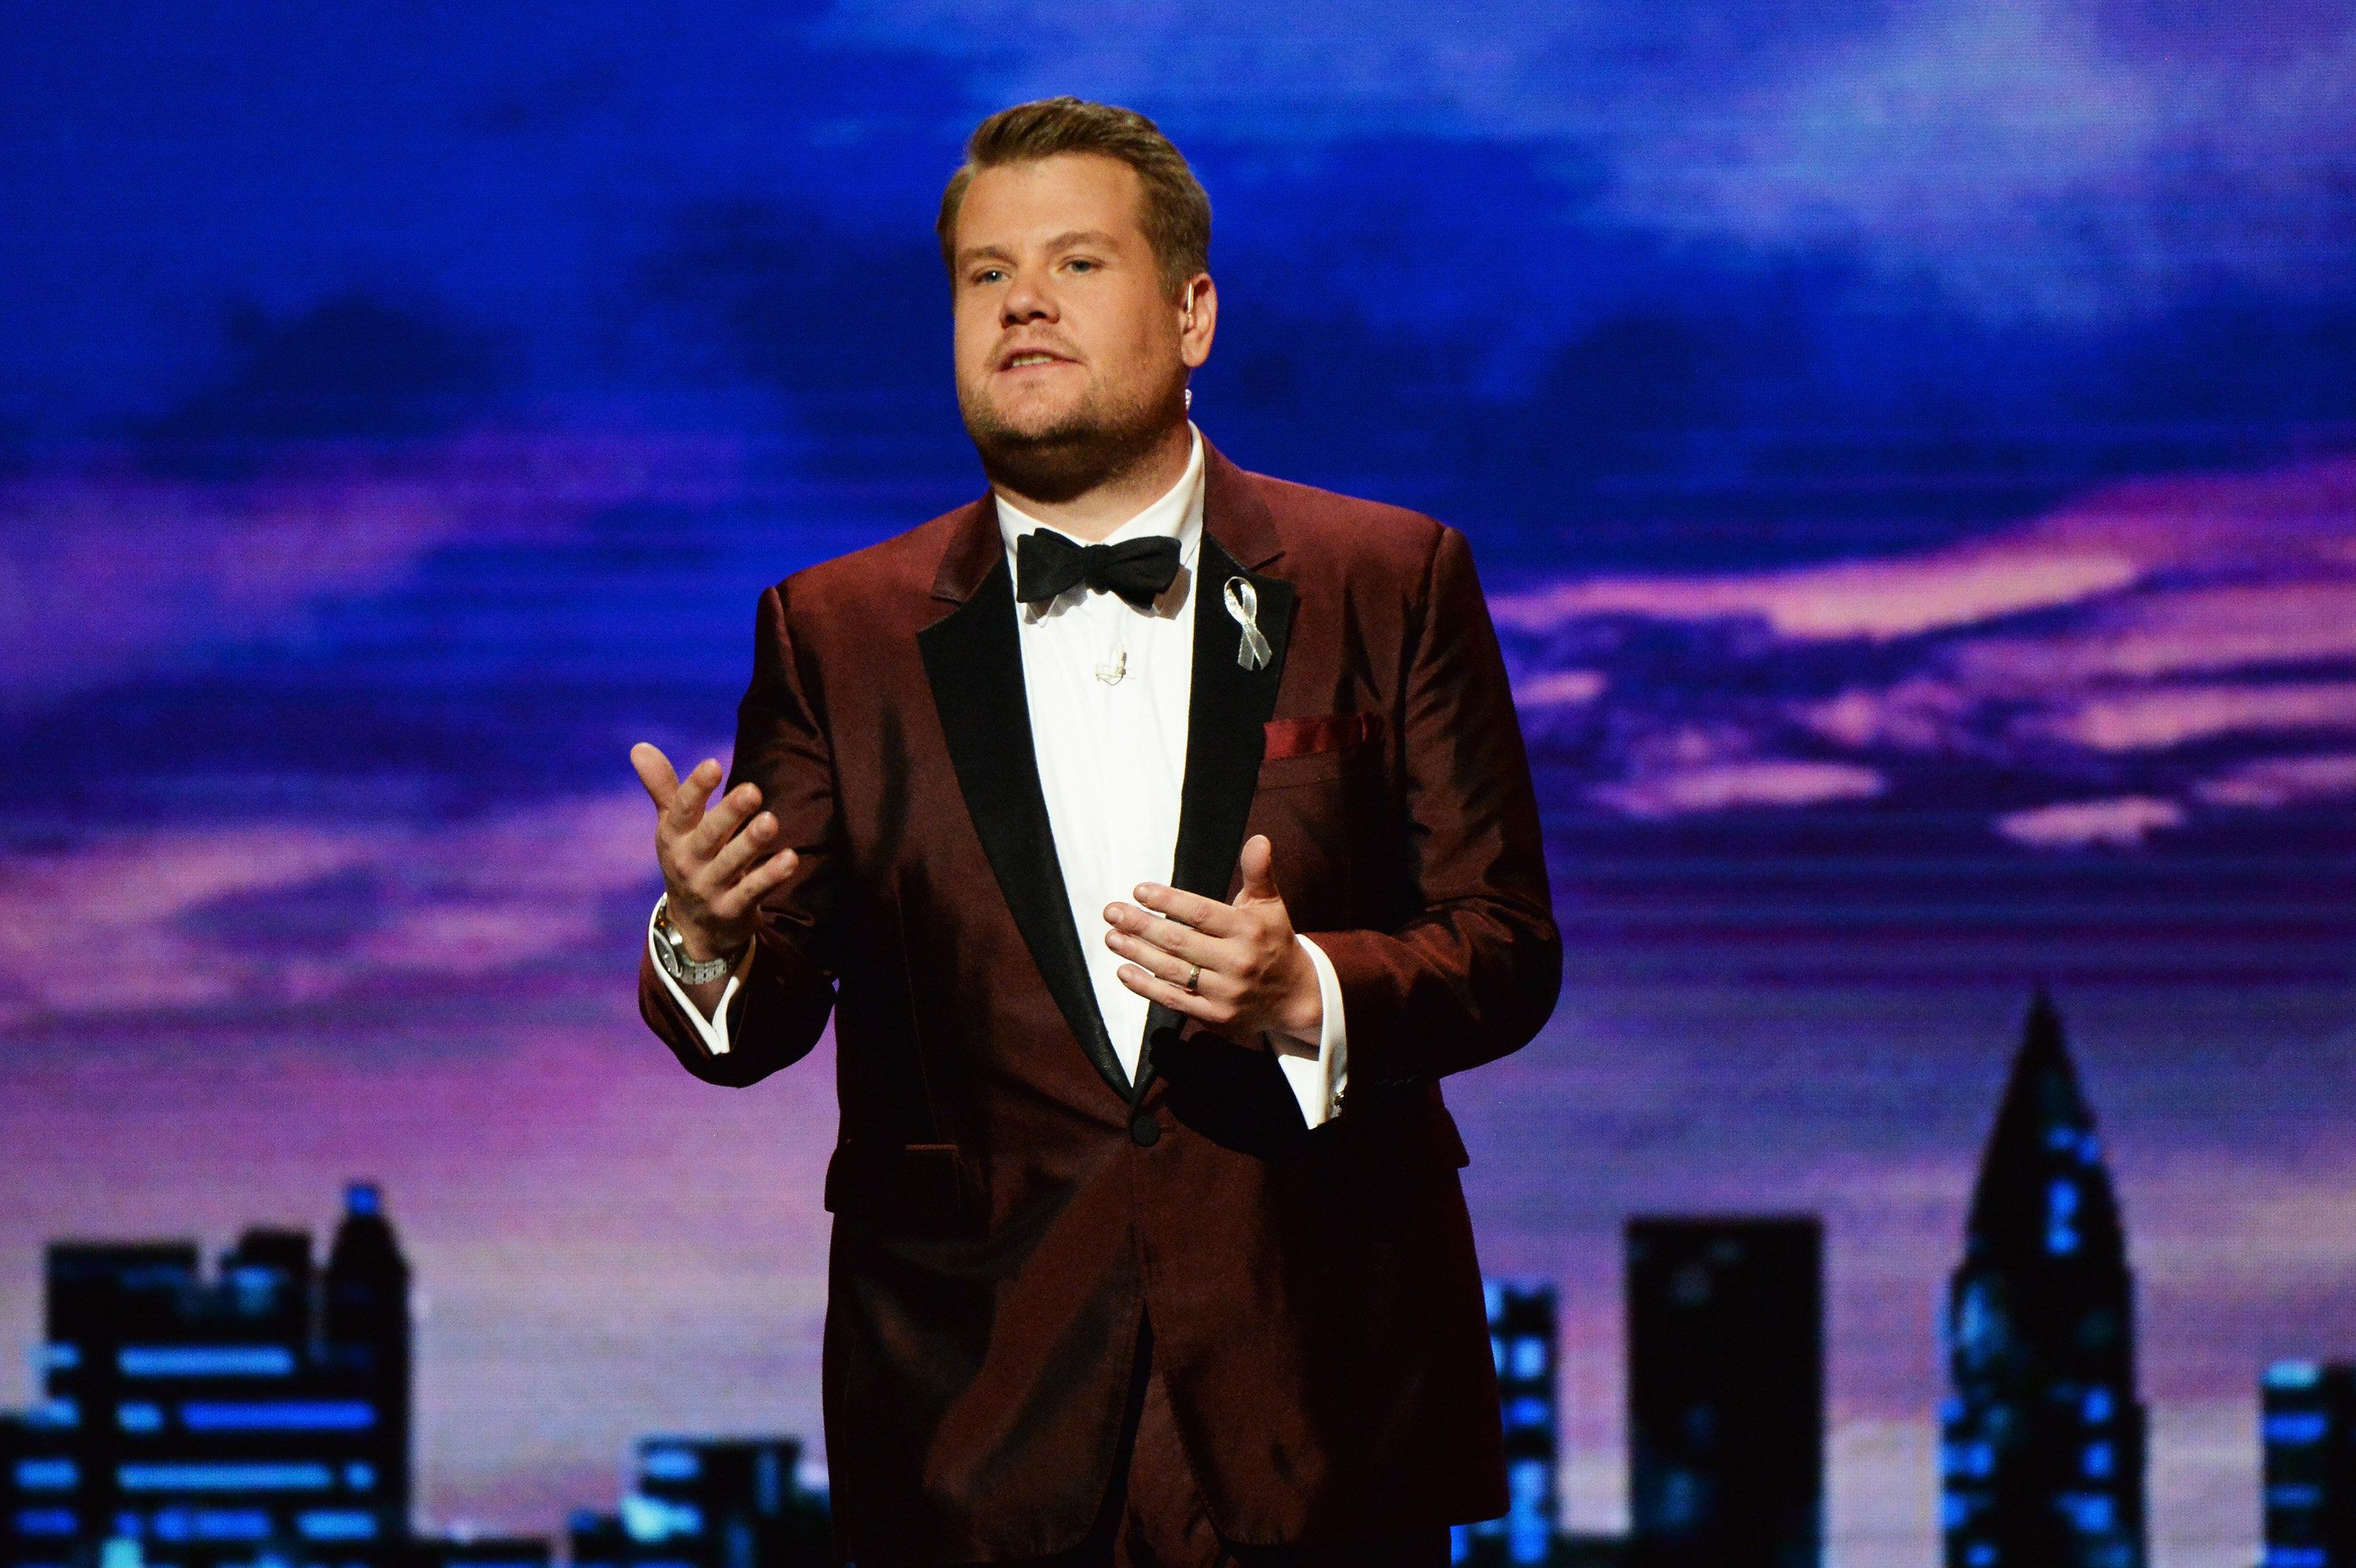 James Corden Opens Tony Awards With Touching Orlando